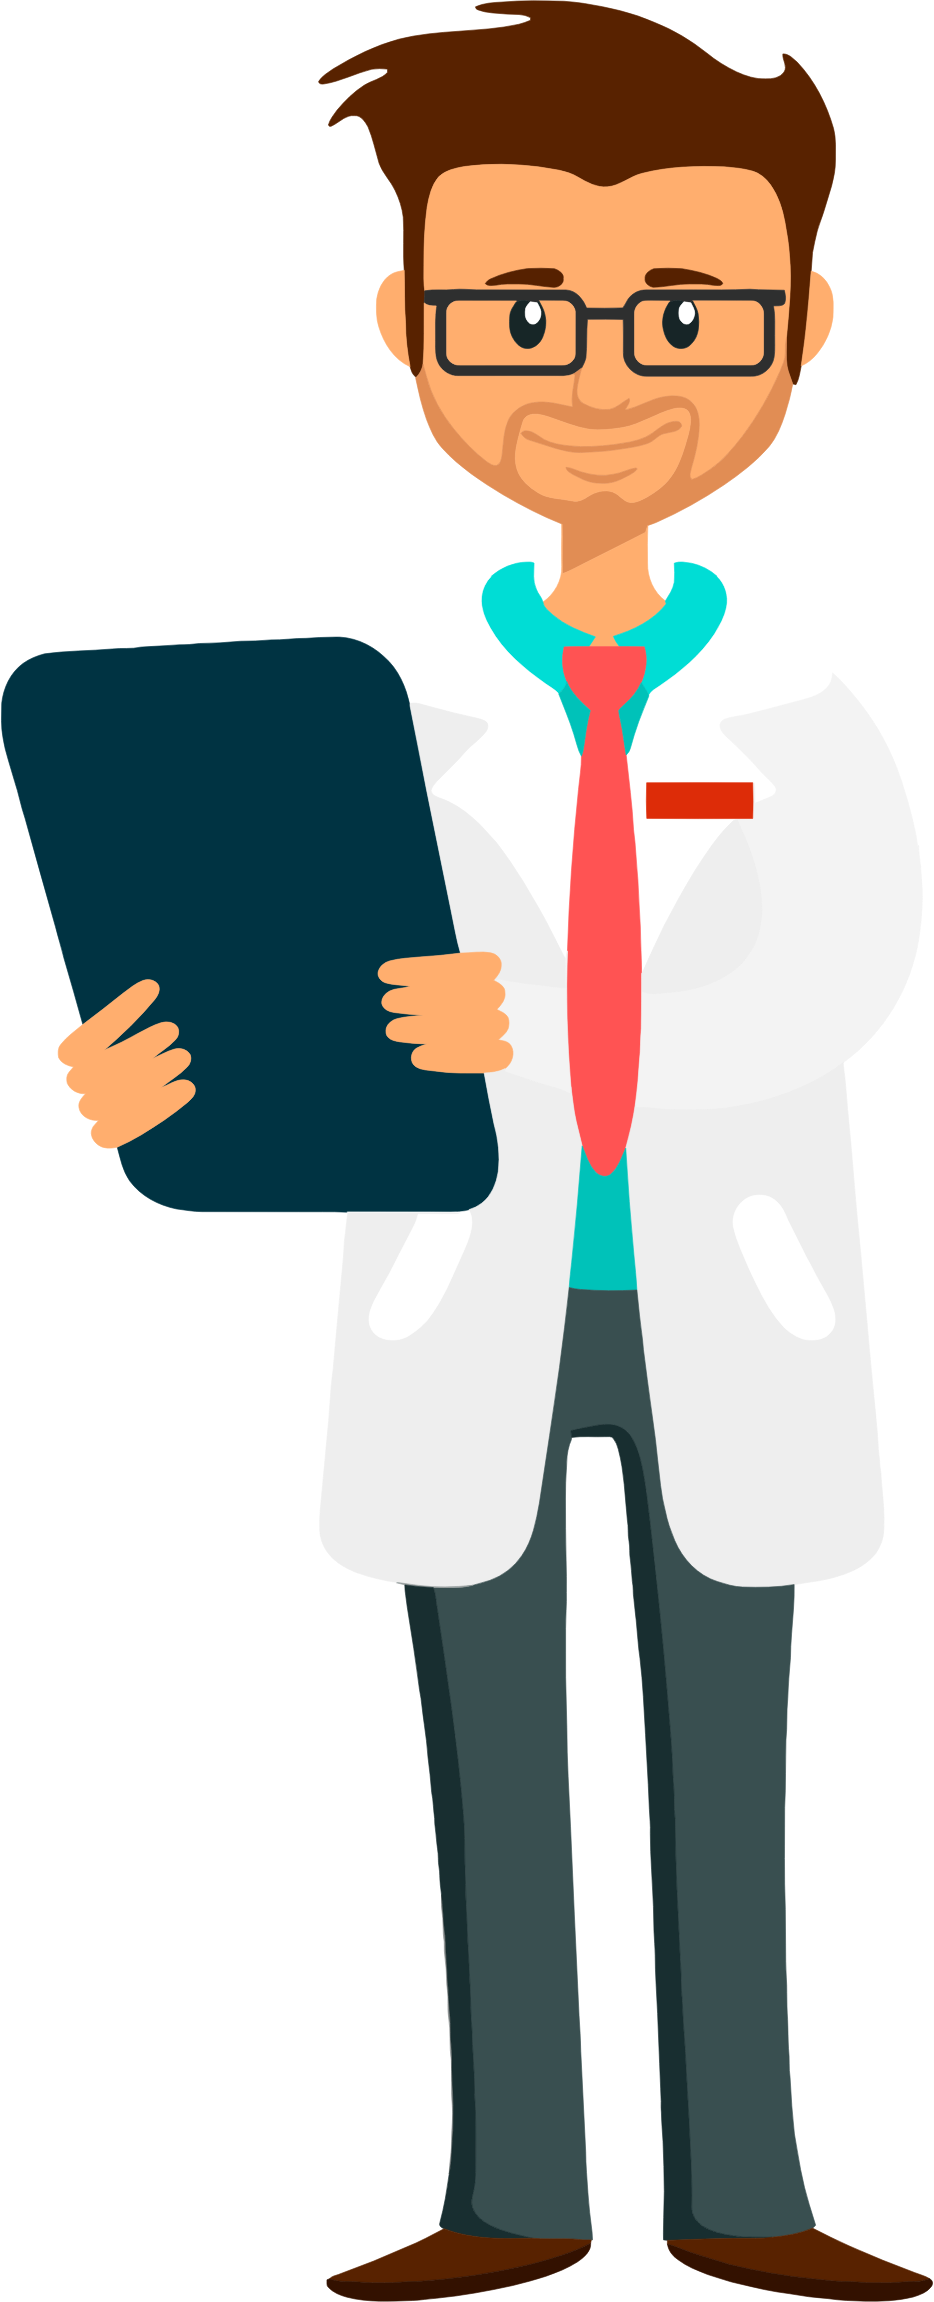 Doctor clipart png. Holding clipboard big image